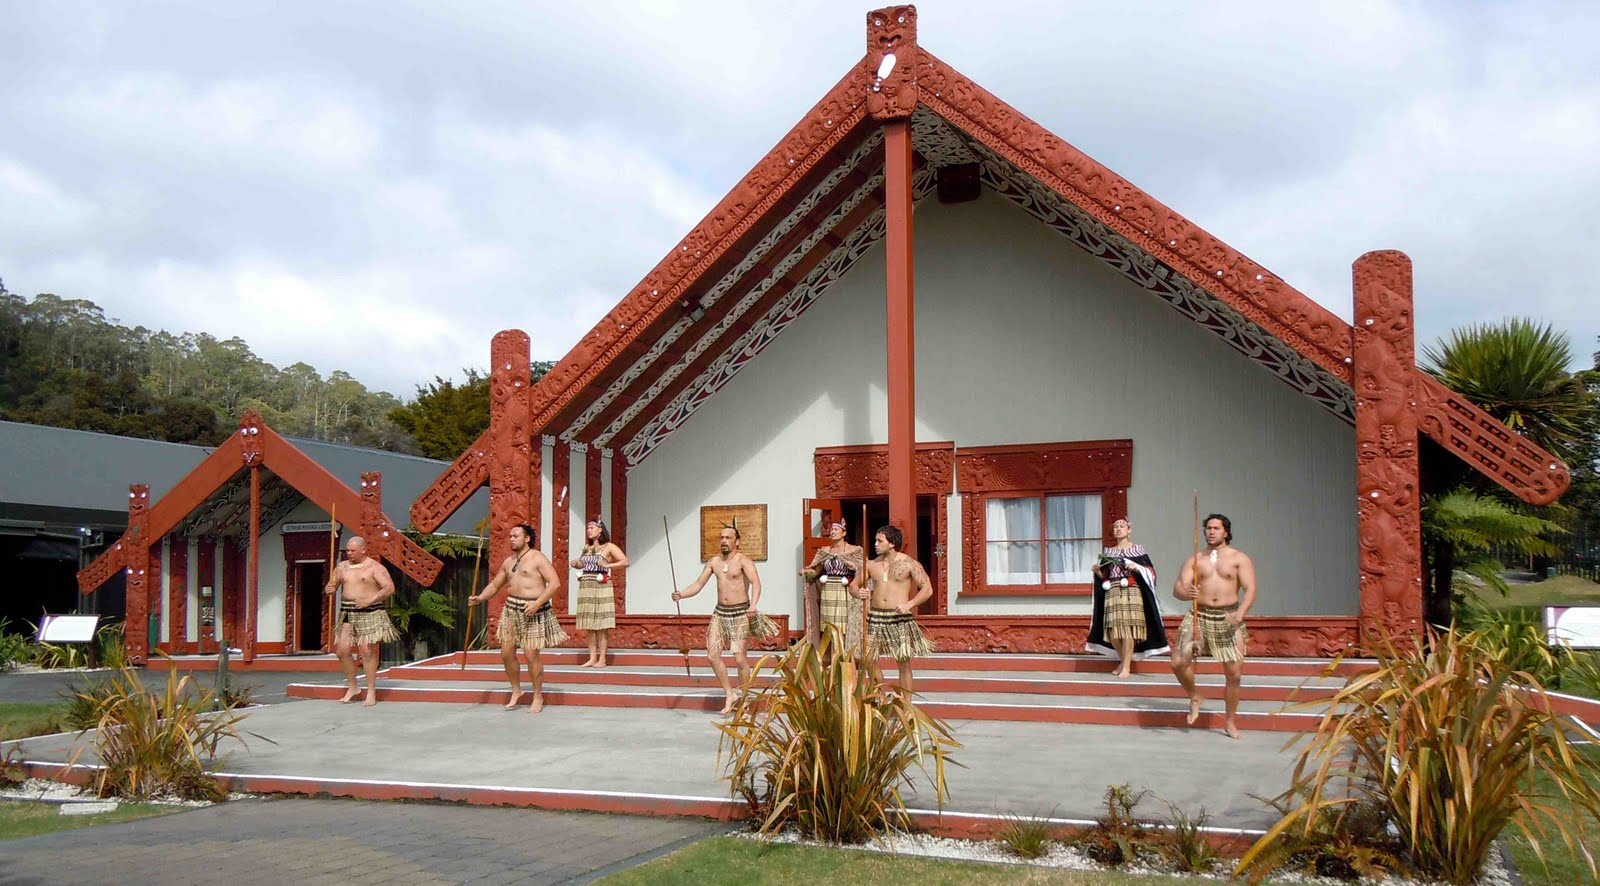 Maori Meeting House: Kylie Griffin's Blog: September 2010